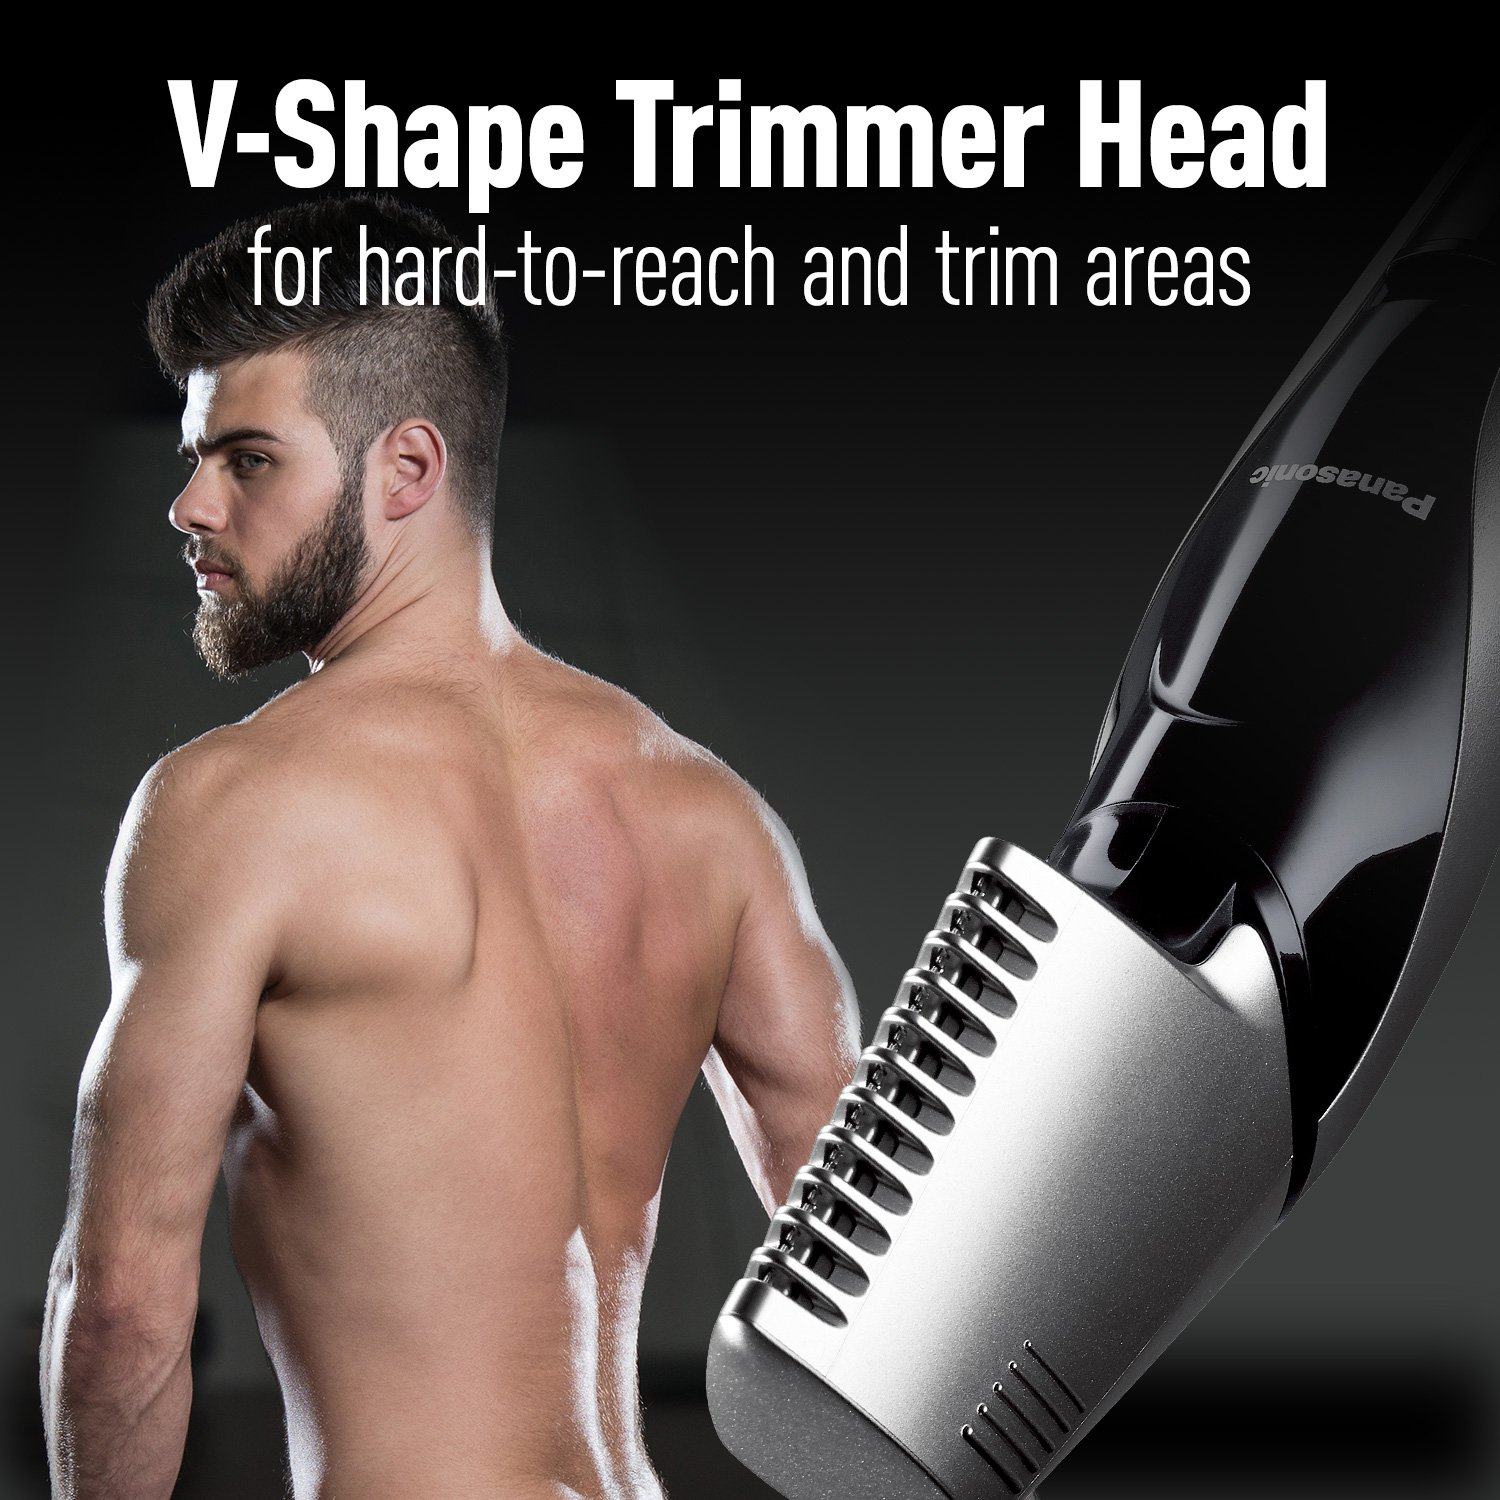 Panasonic Cordless Electric Body Hair Trimmer with Waterproof Design, ER-GK60-S by Panasonic (Image #9)